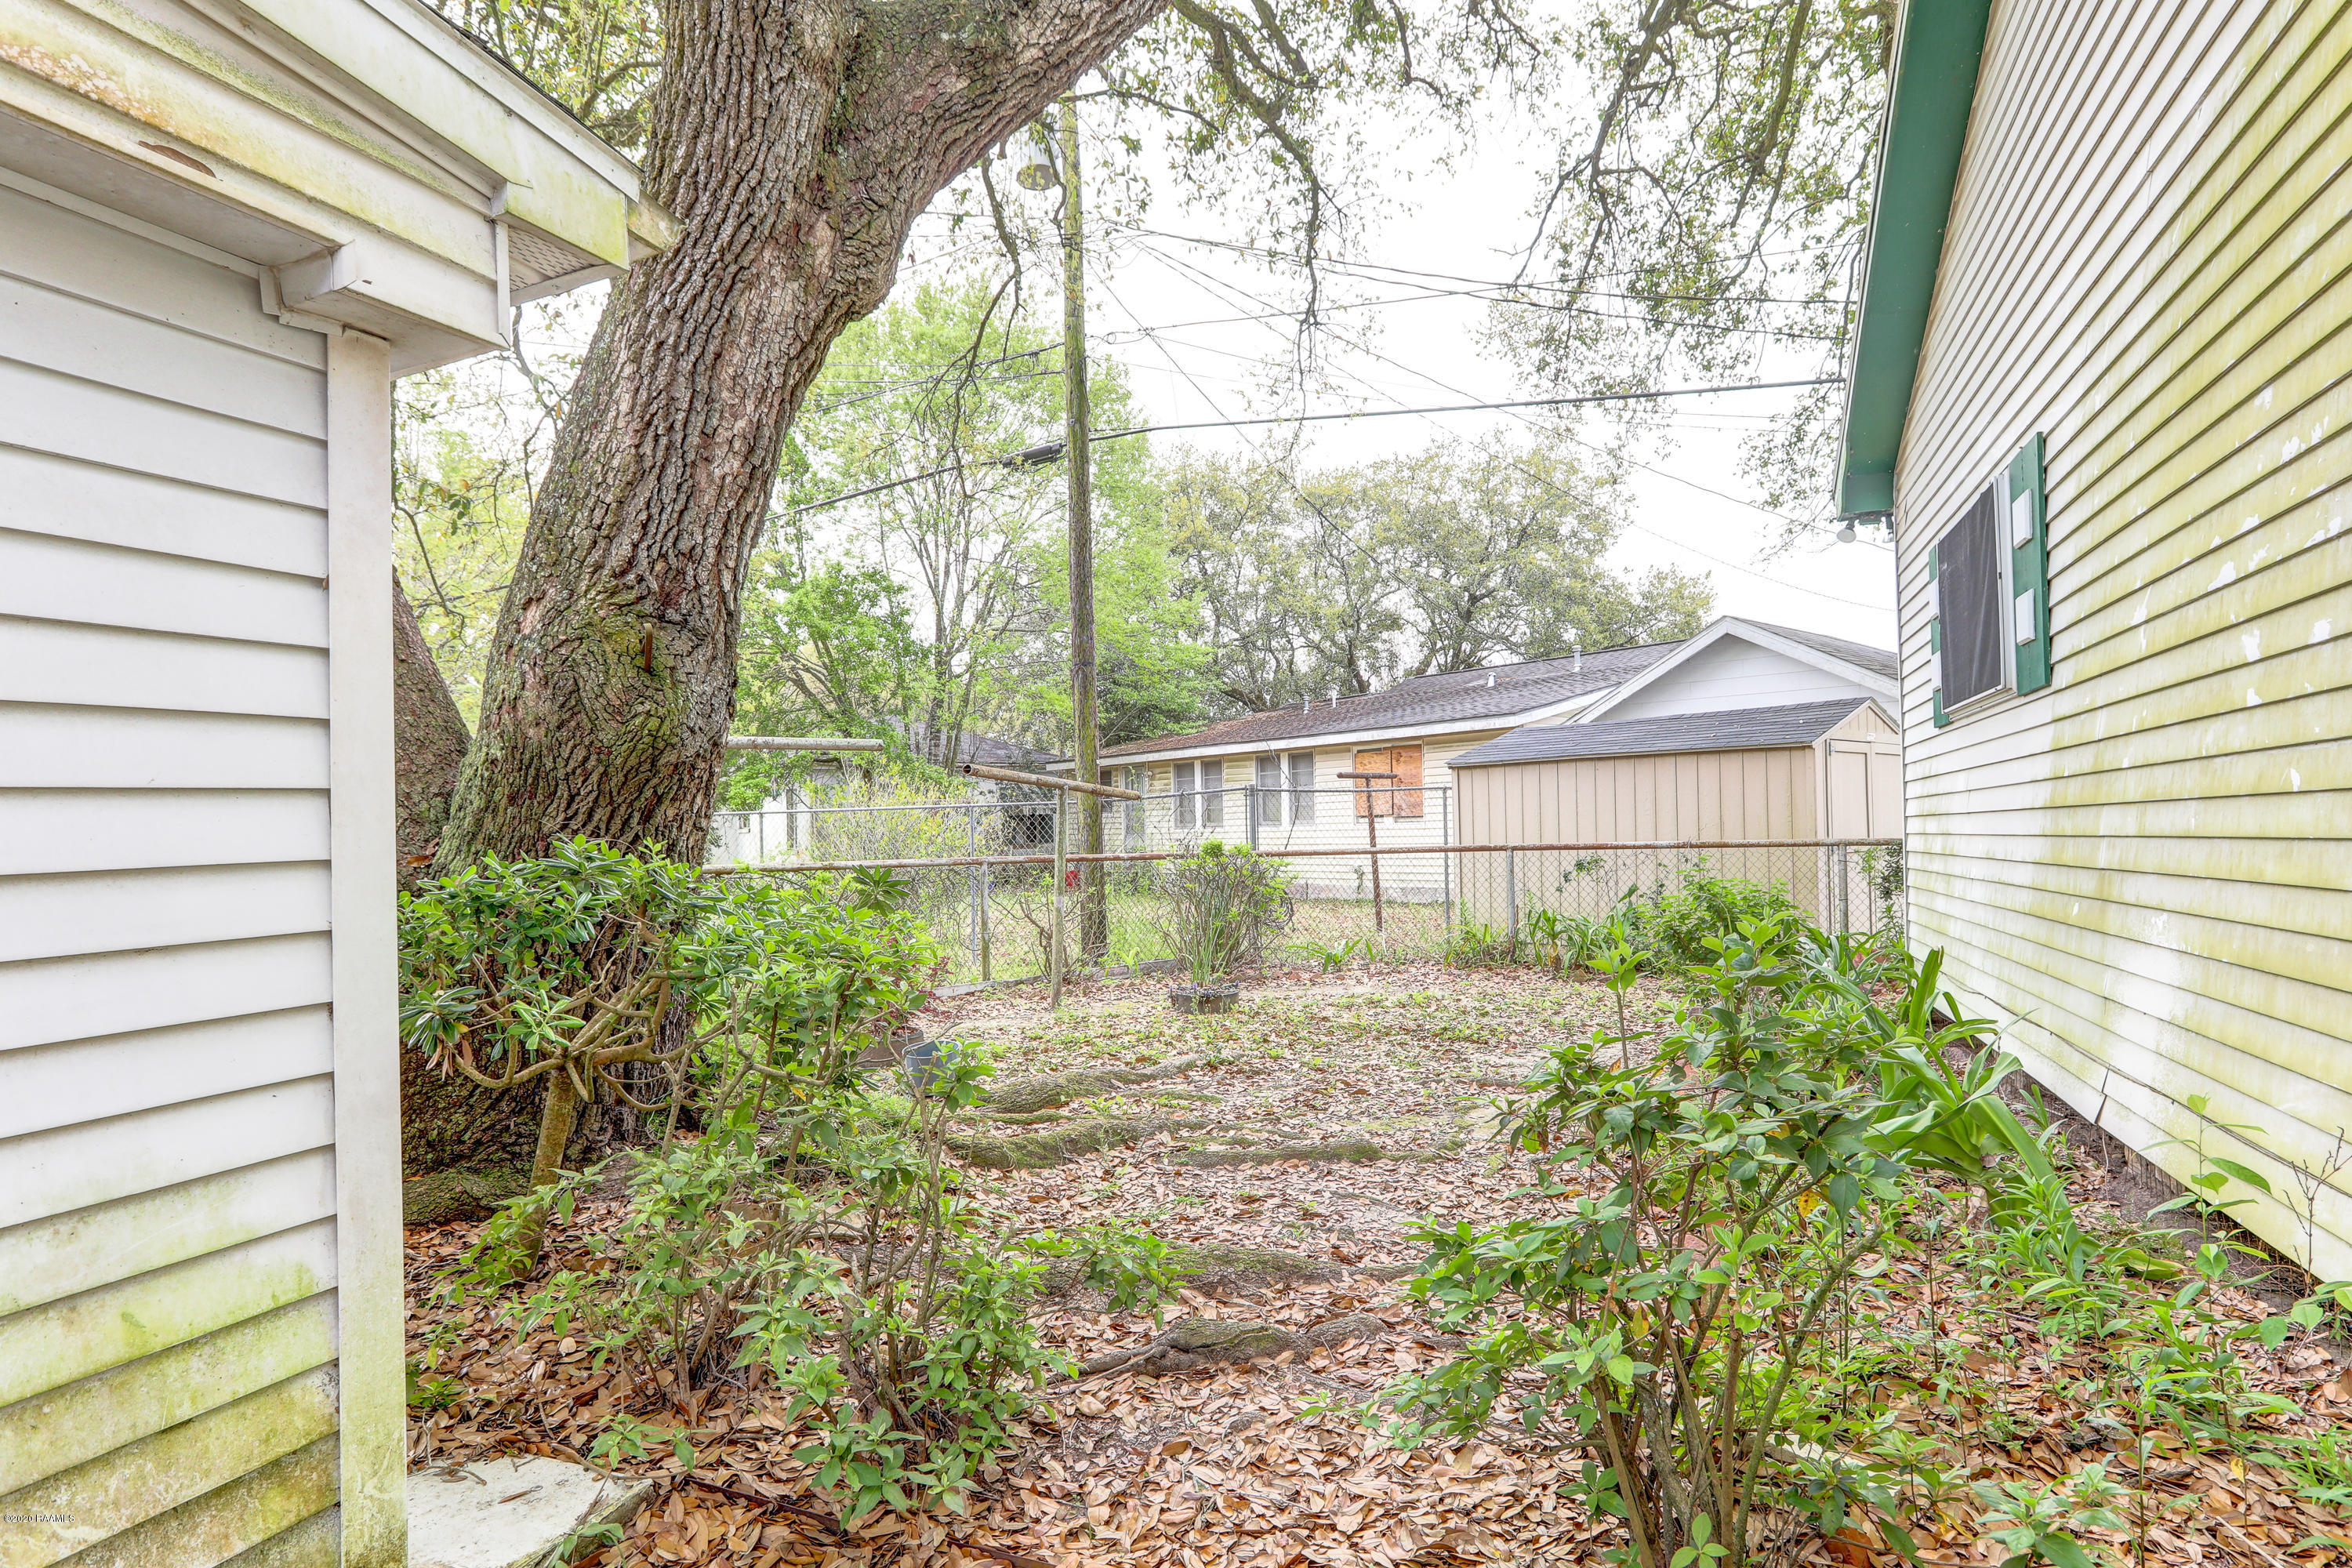 513 Broussard Street, New Iberia, LA 70560 Photo #28